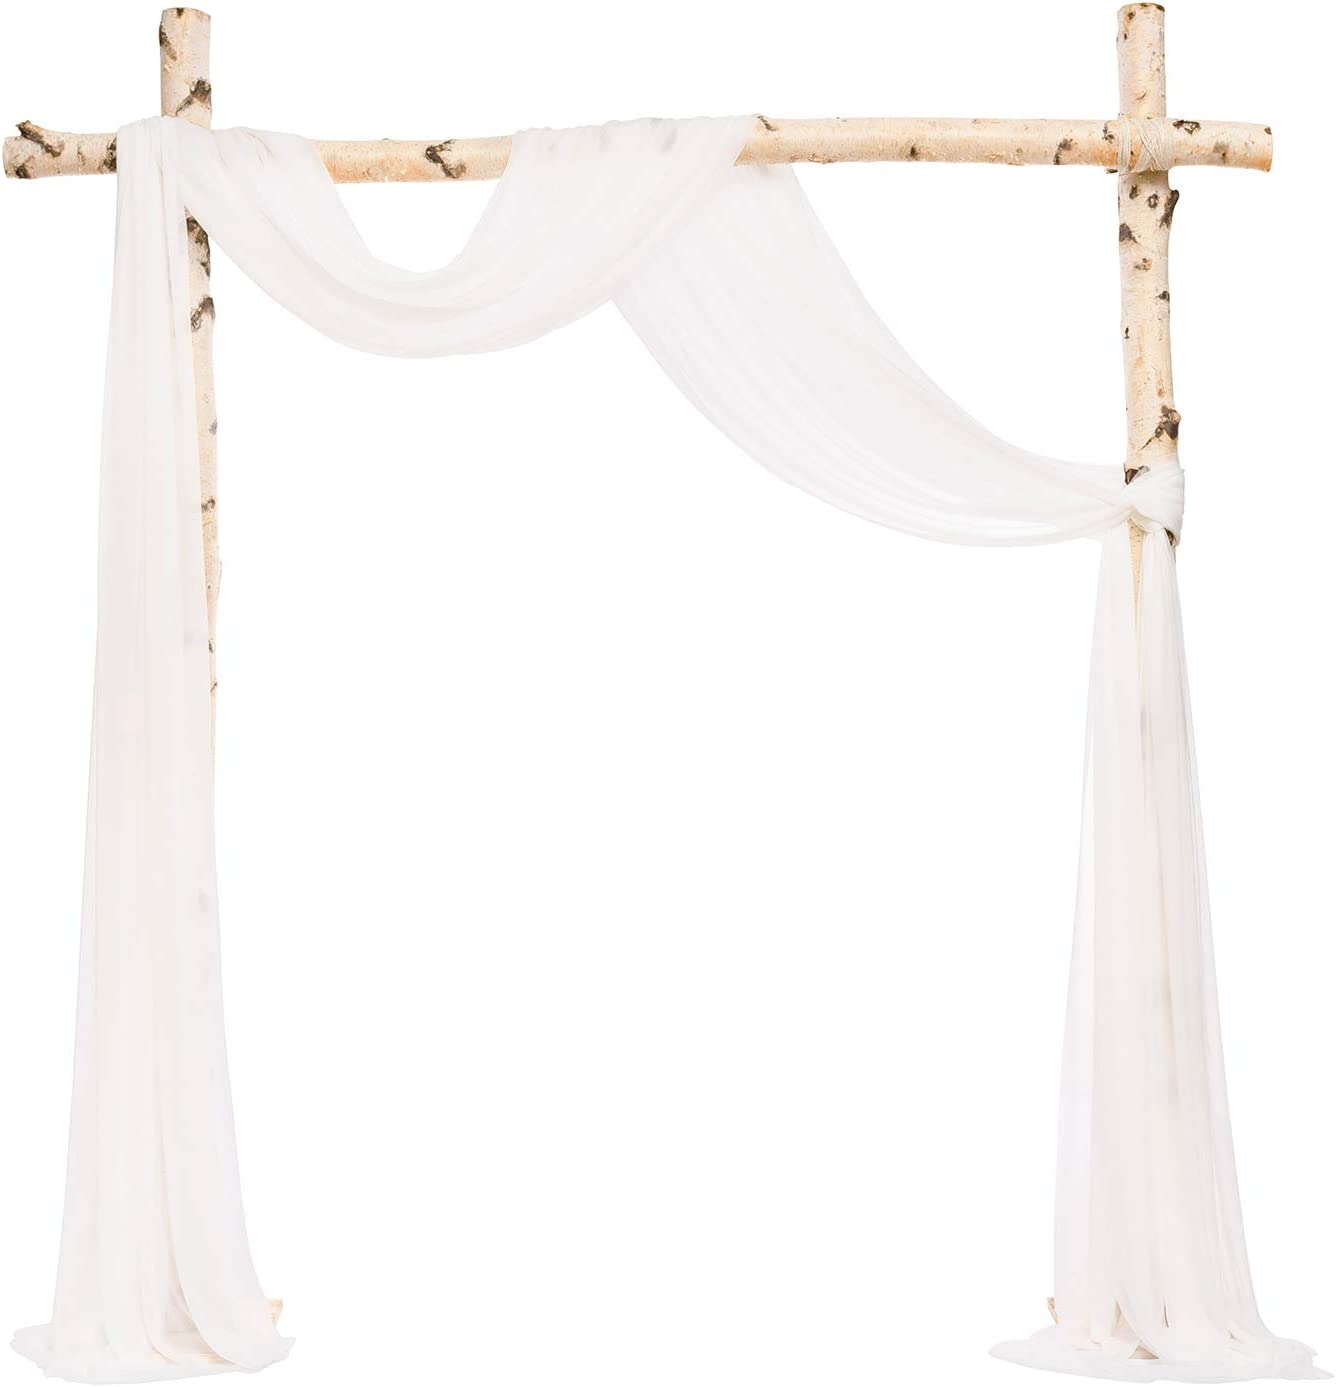 Ling's moment Sheer Backdrop Curtain Panels for Wedding Arch Ceremony Decorations (6 Yards Drapping Fabric, White)